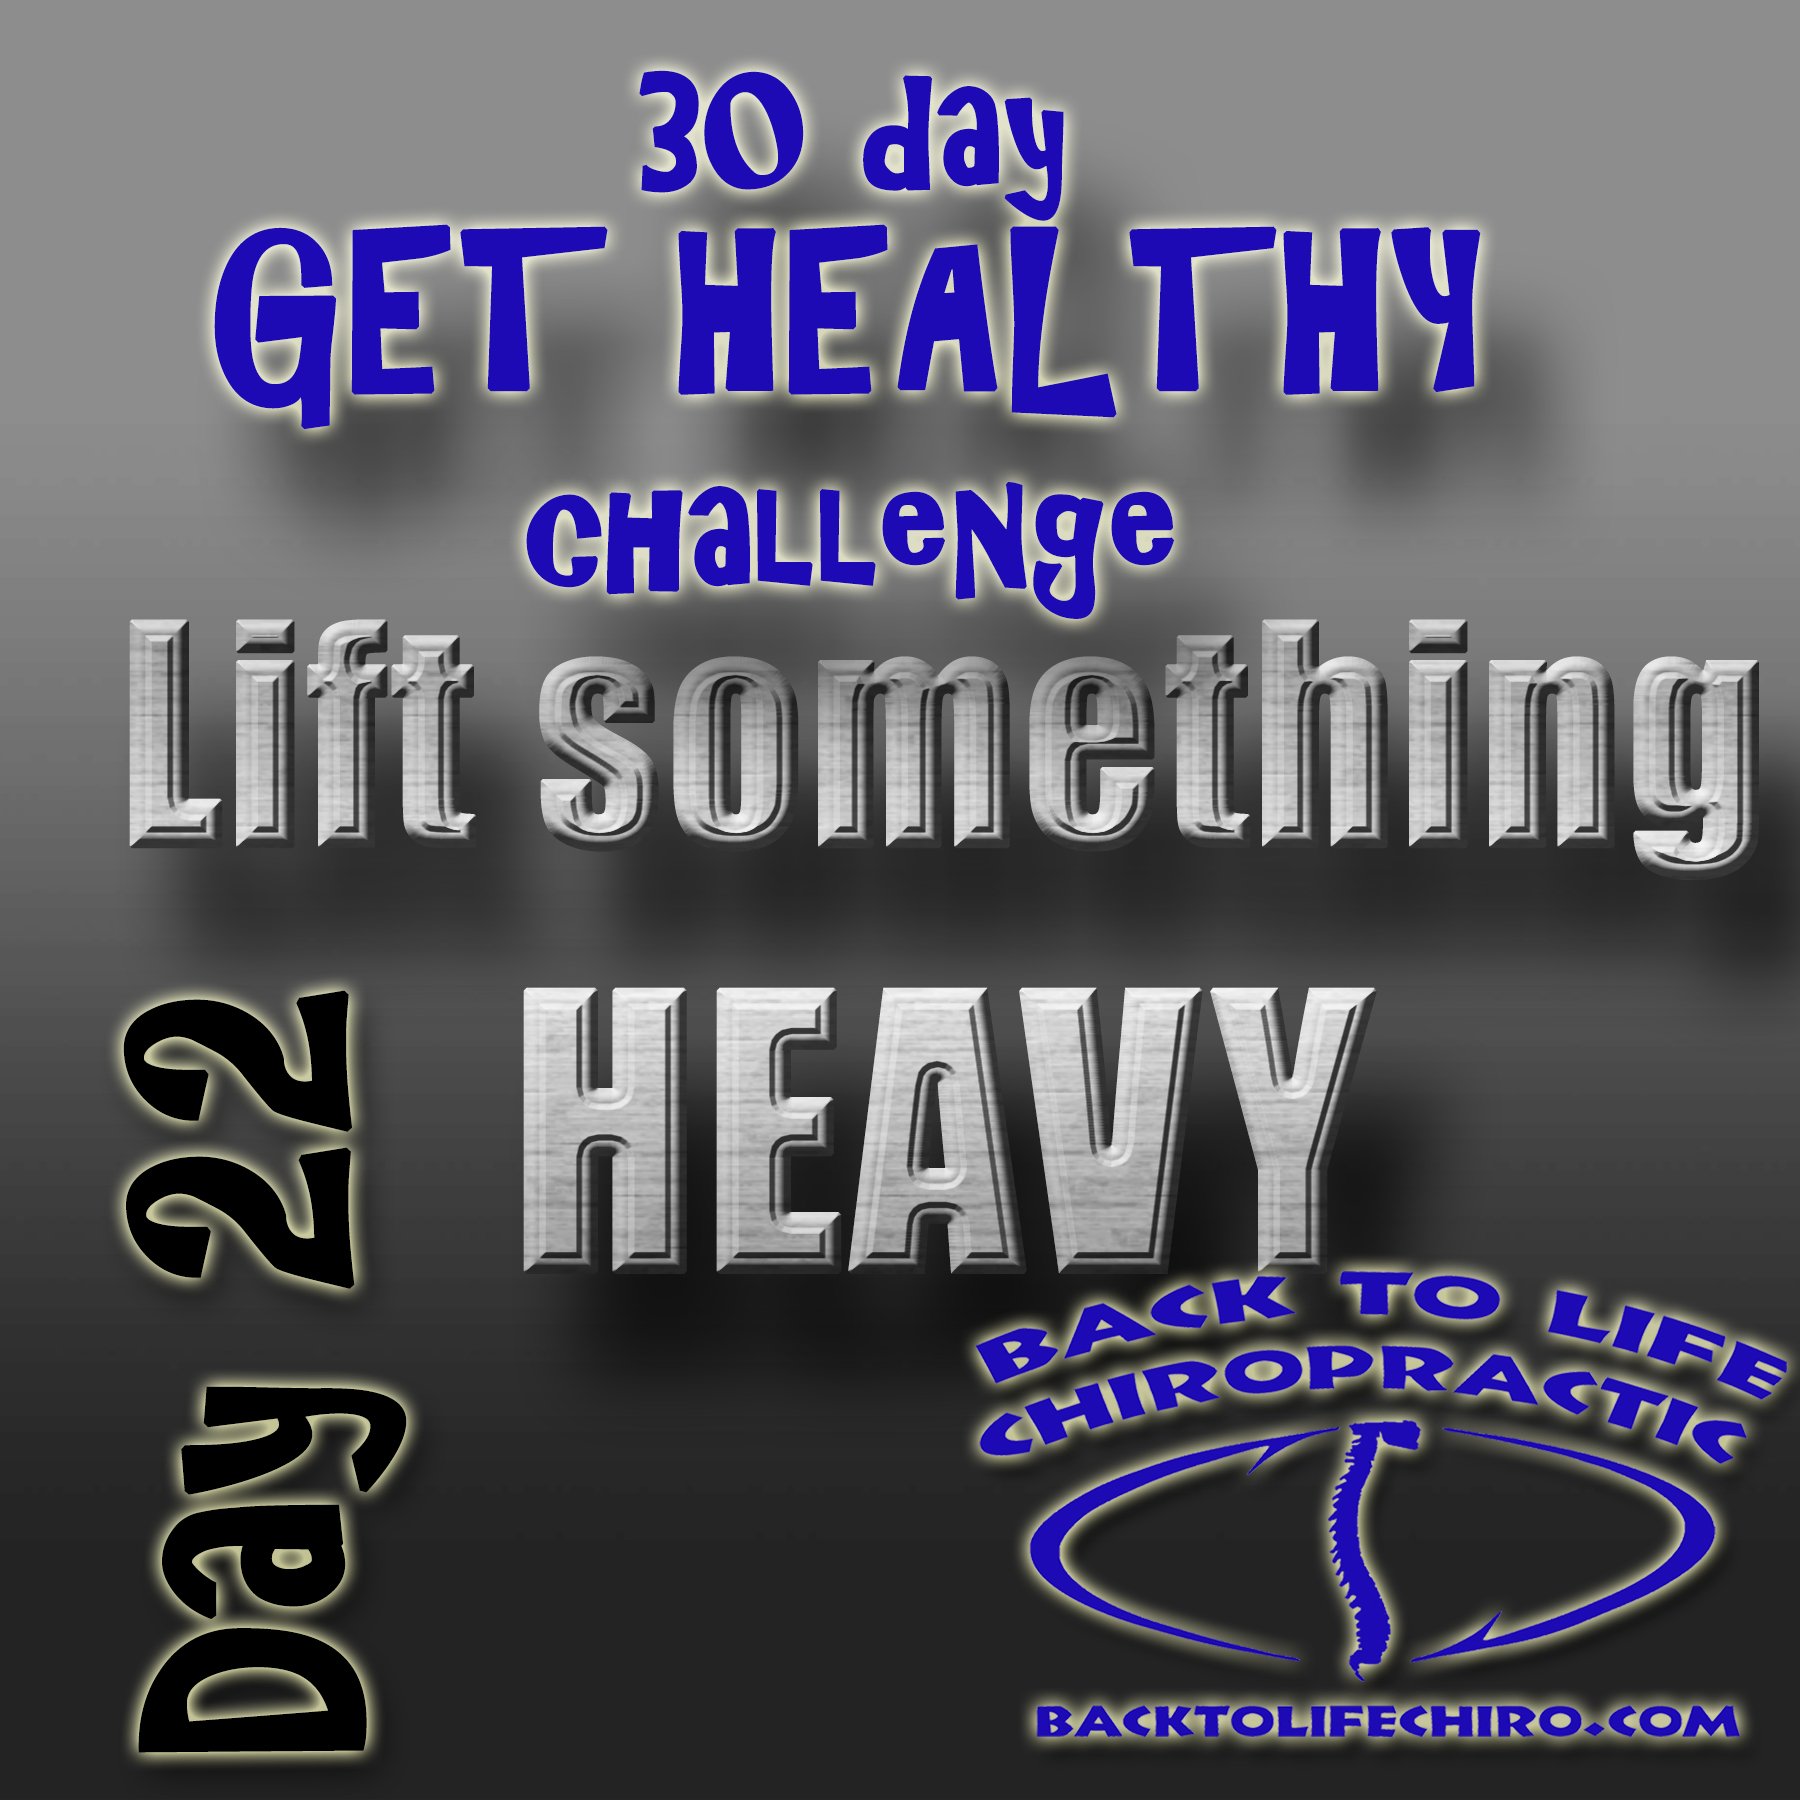 30 Day Get Healthy Challenge, Day 22